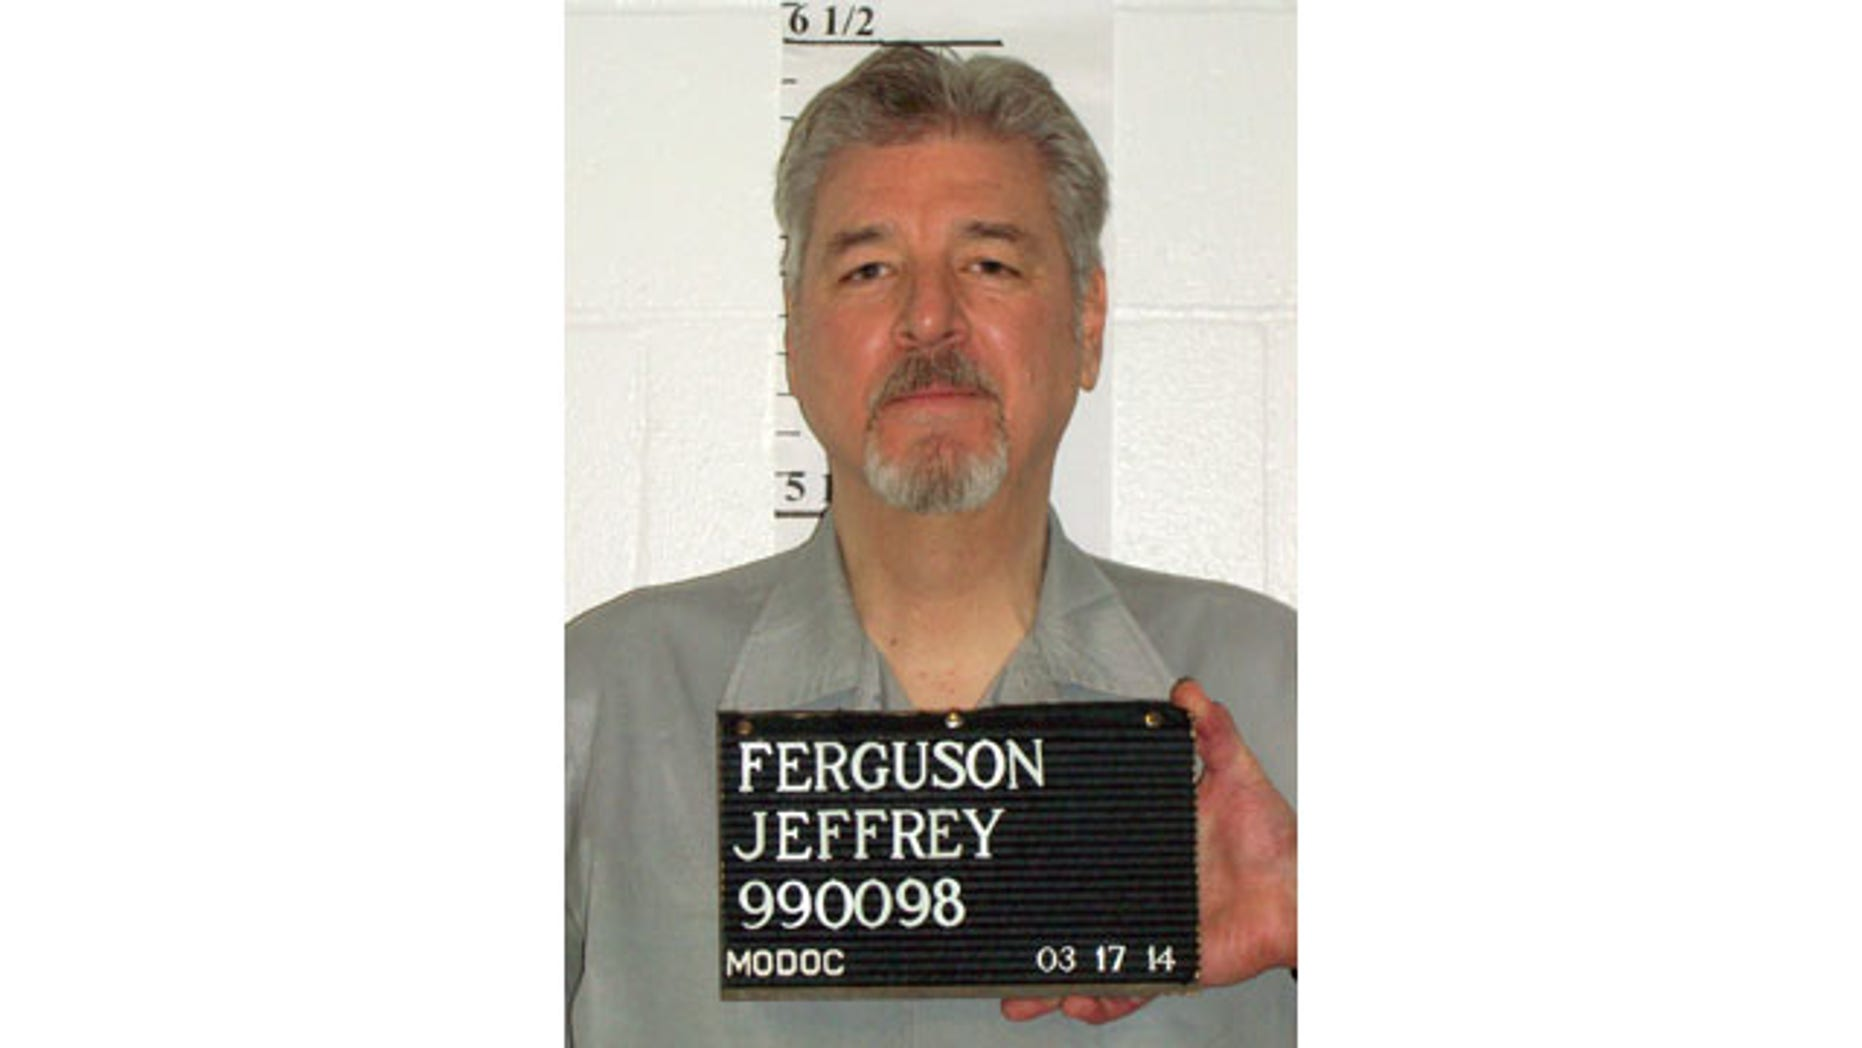 March 17, 2014: This photo provided by the Missouri Department of Corrections shows Jeffrey Ferguson, who was executed early Wednesday for killing a 17-year-old St. Charles County girl in 1989. (AP Photo/Missouri Department of Corrections)